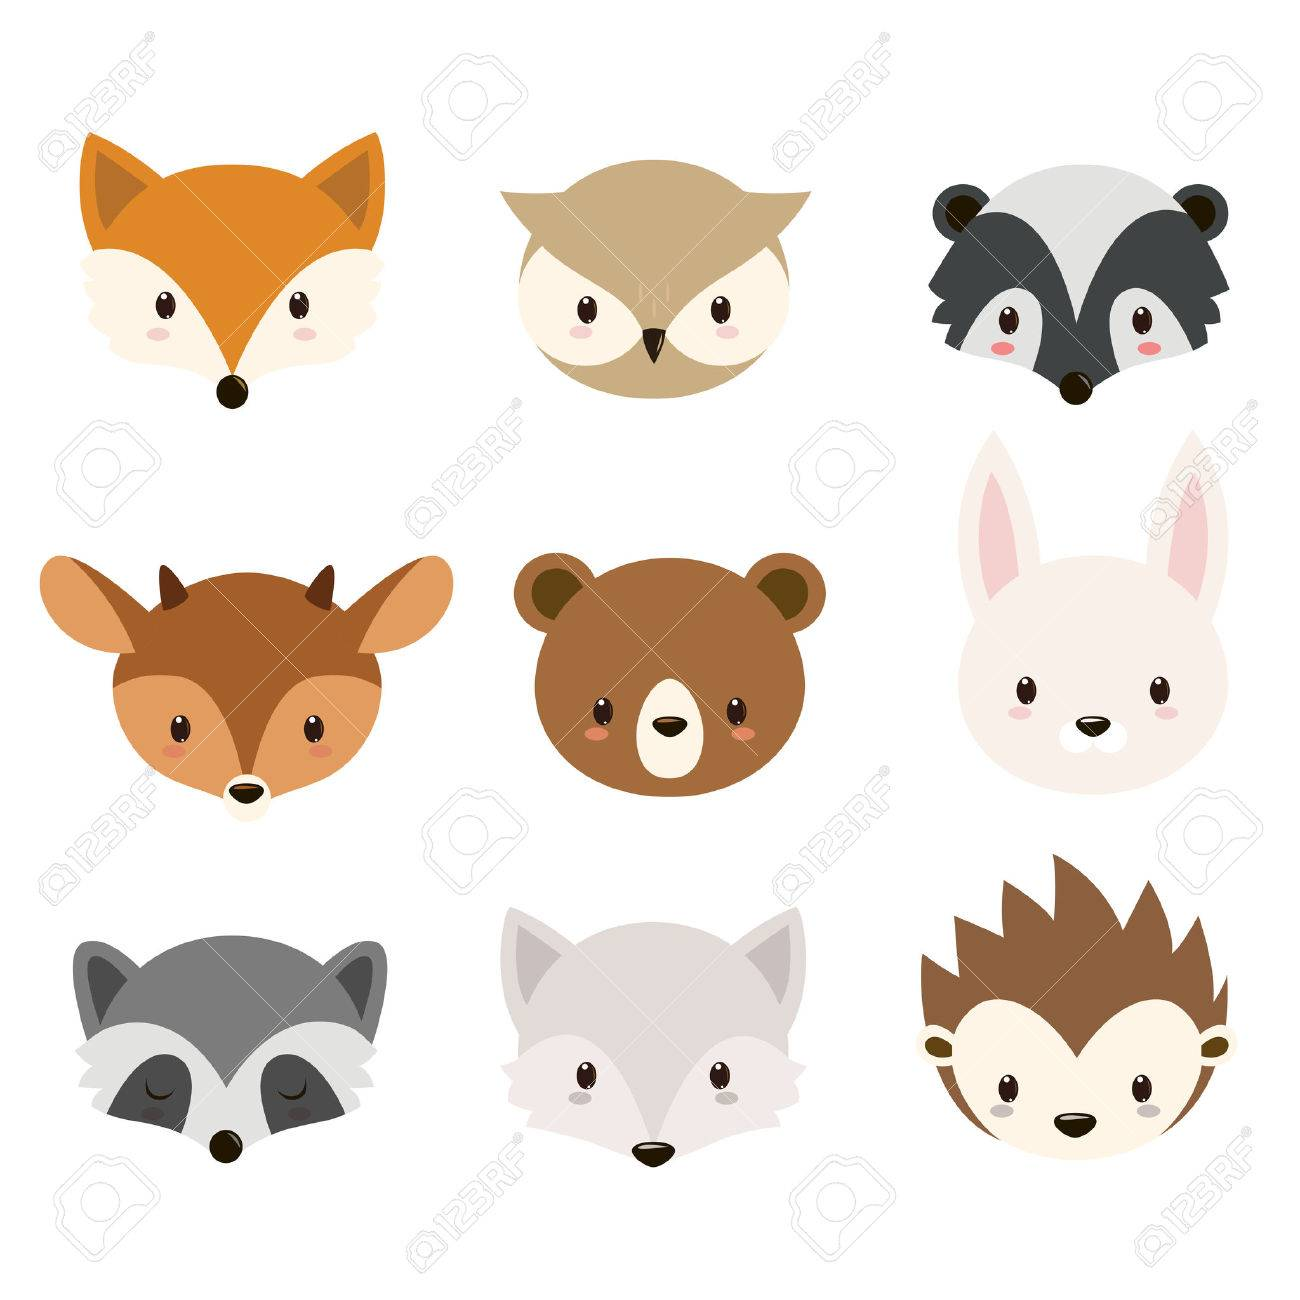 Cute woodland animals collection. Animals heads isolated on white background. - 50005805